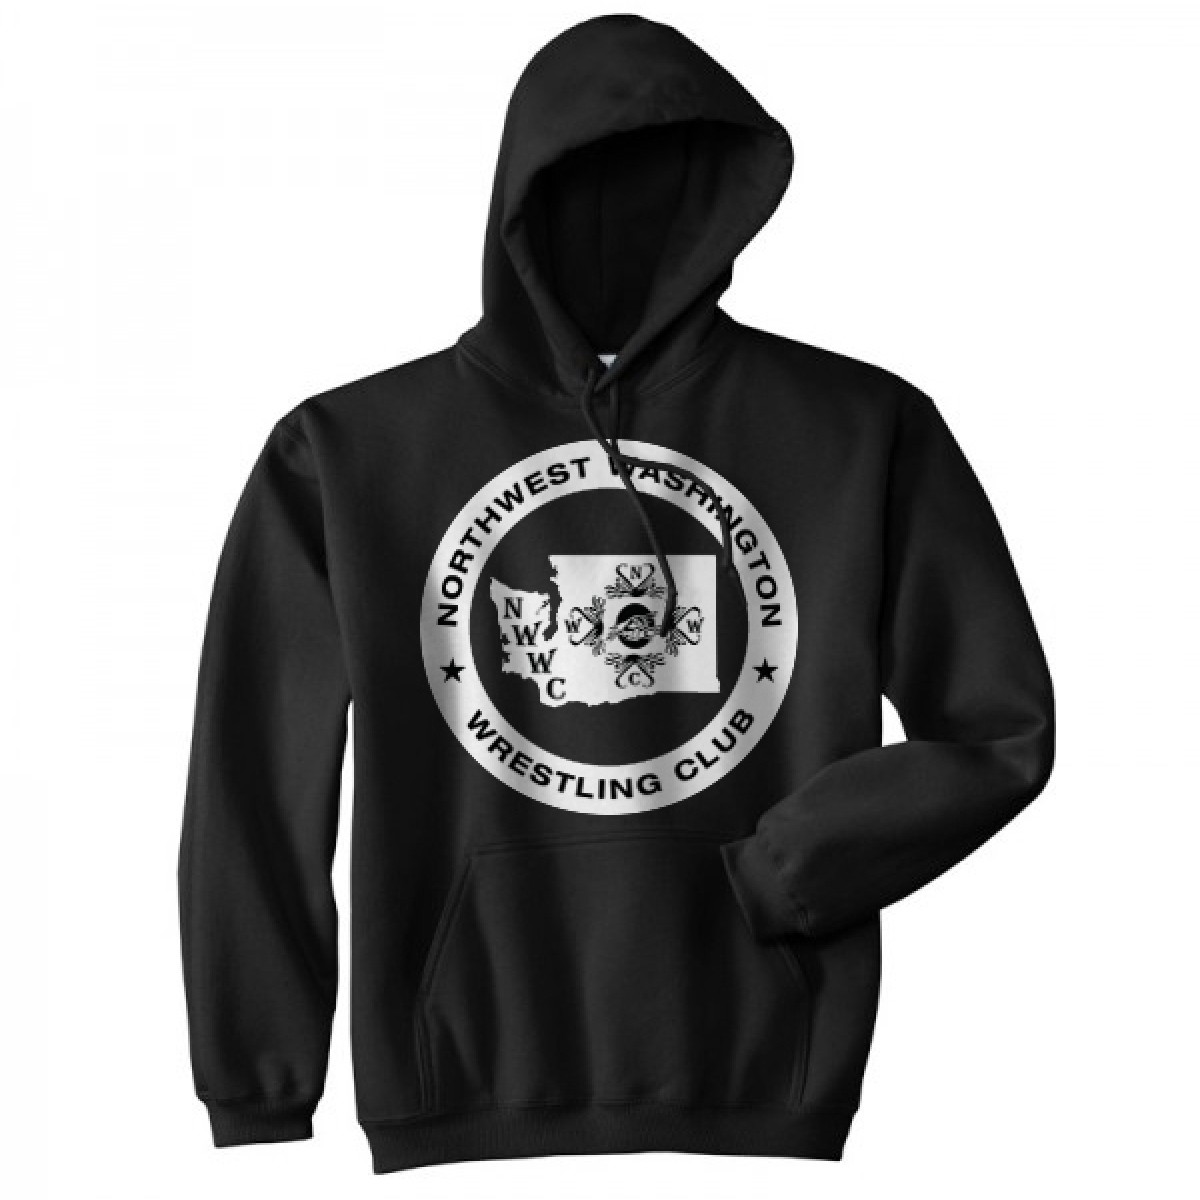 NWWC black hoodie with the logo in white.